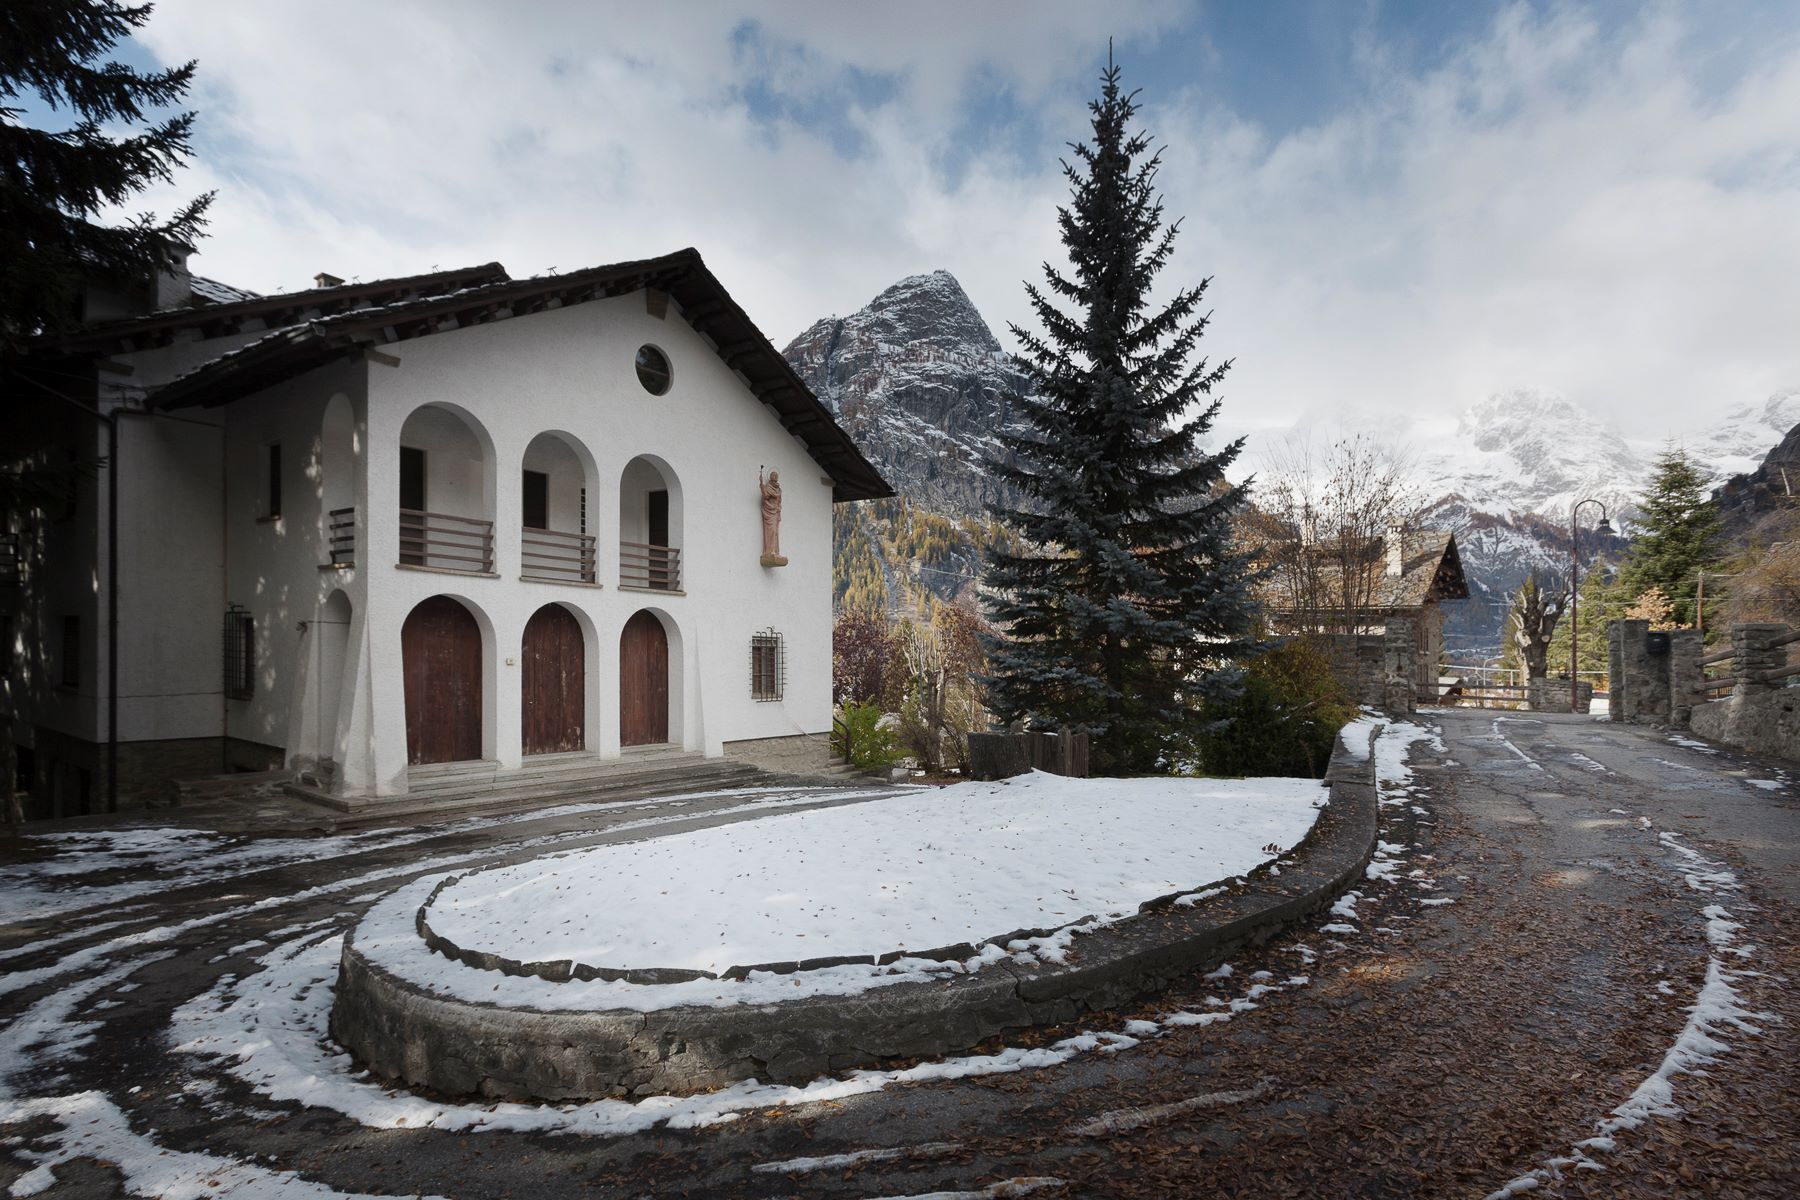 Single Family Home for Sale at Villa and guest house in Courmayeur Via Donzelli Courmayeur, Aosta 11013 Italy